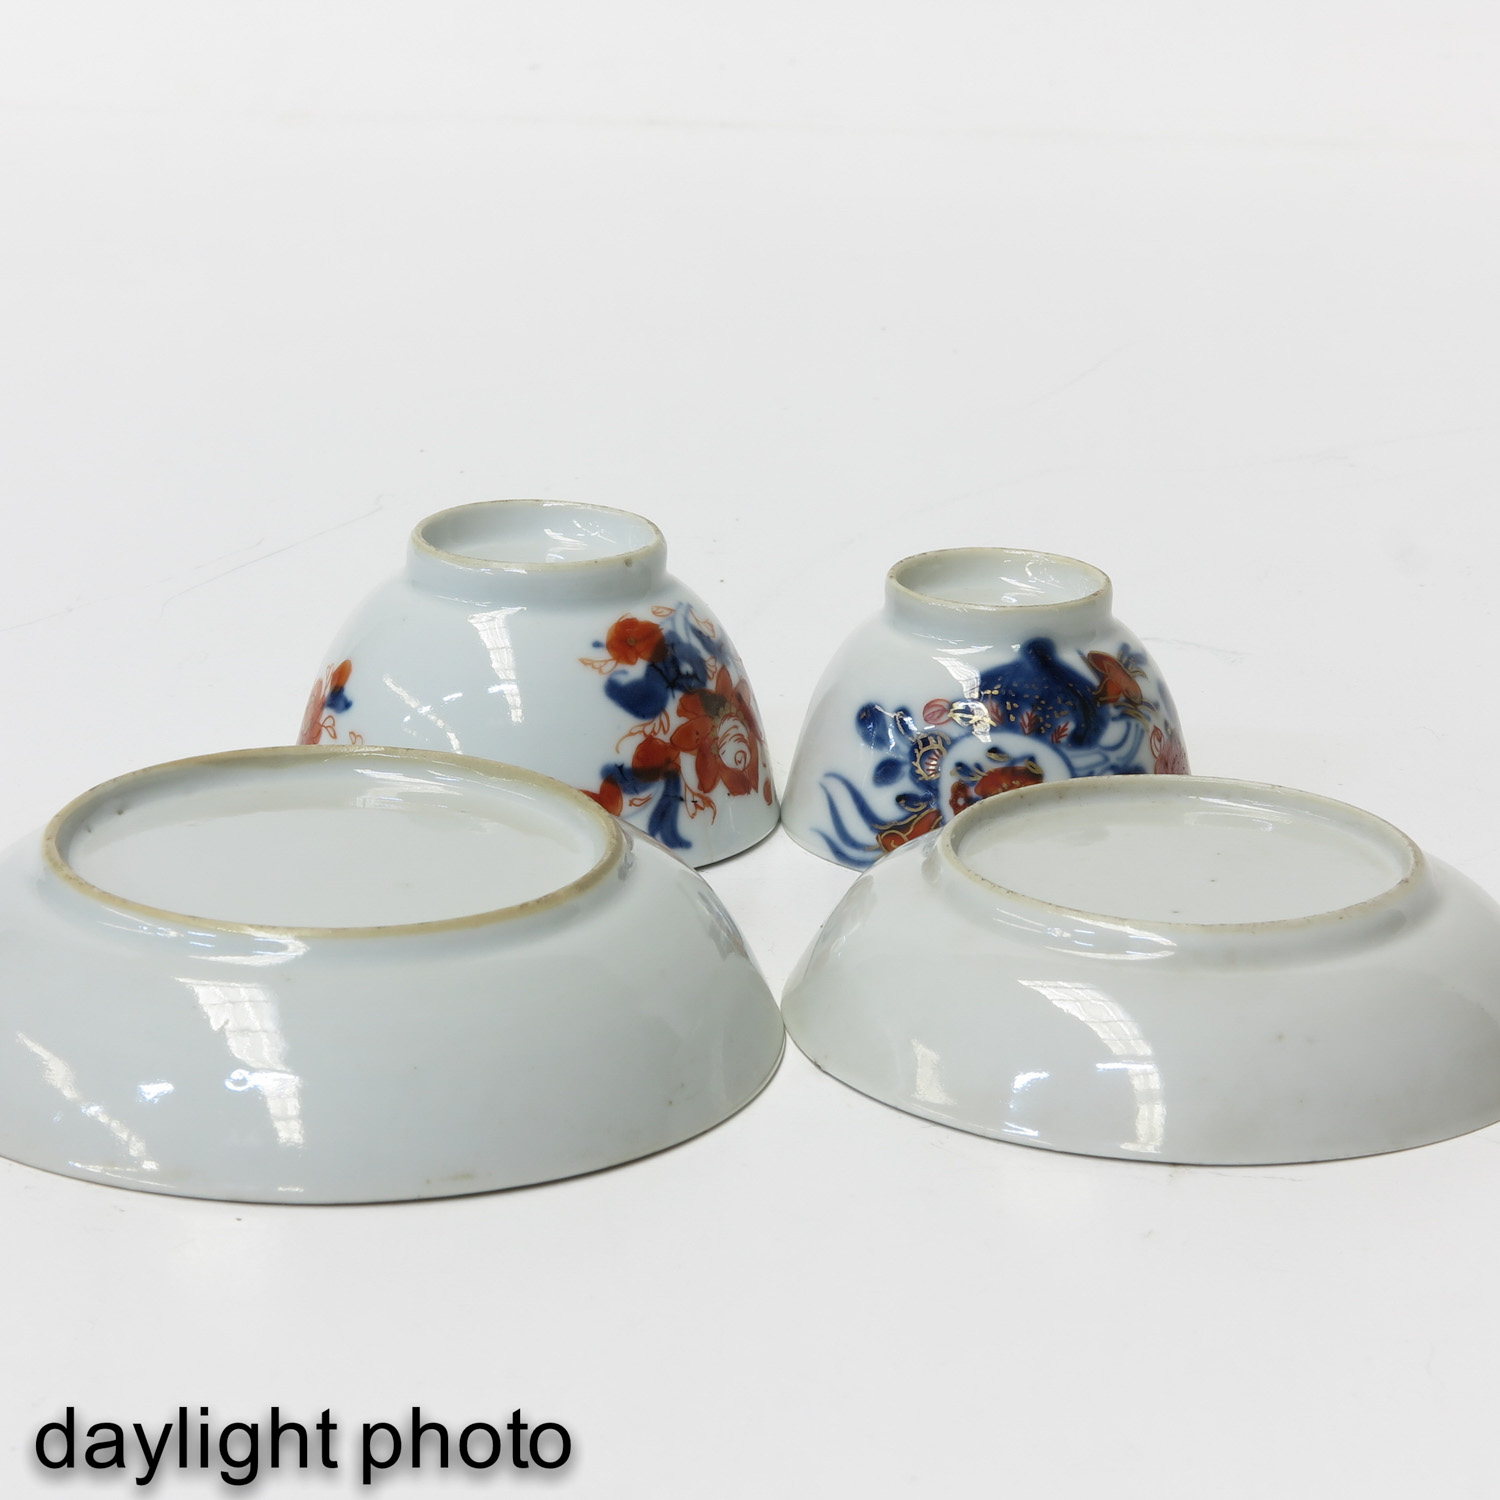 A Collection of Cups and Saucers - Image 10 of 10